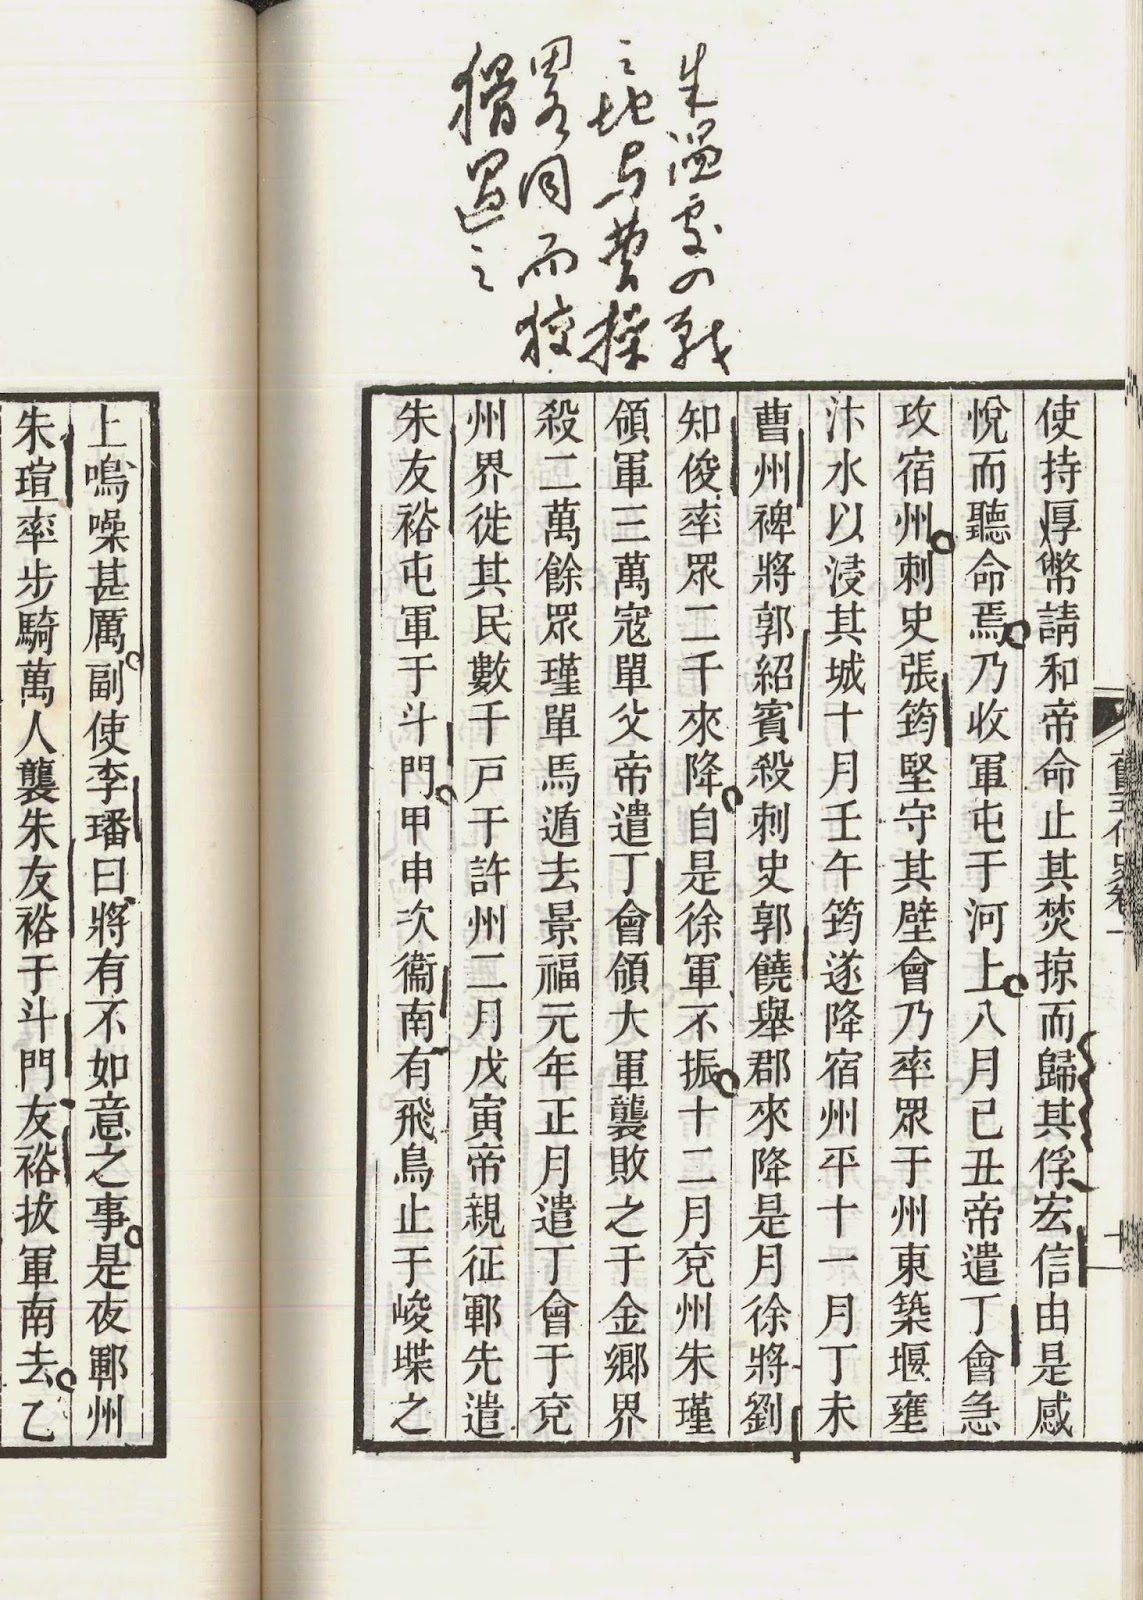 A book of printed characters with some handwritten notes.